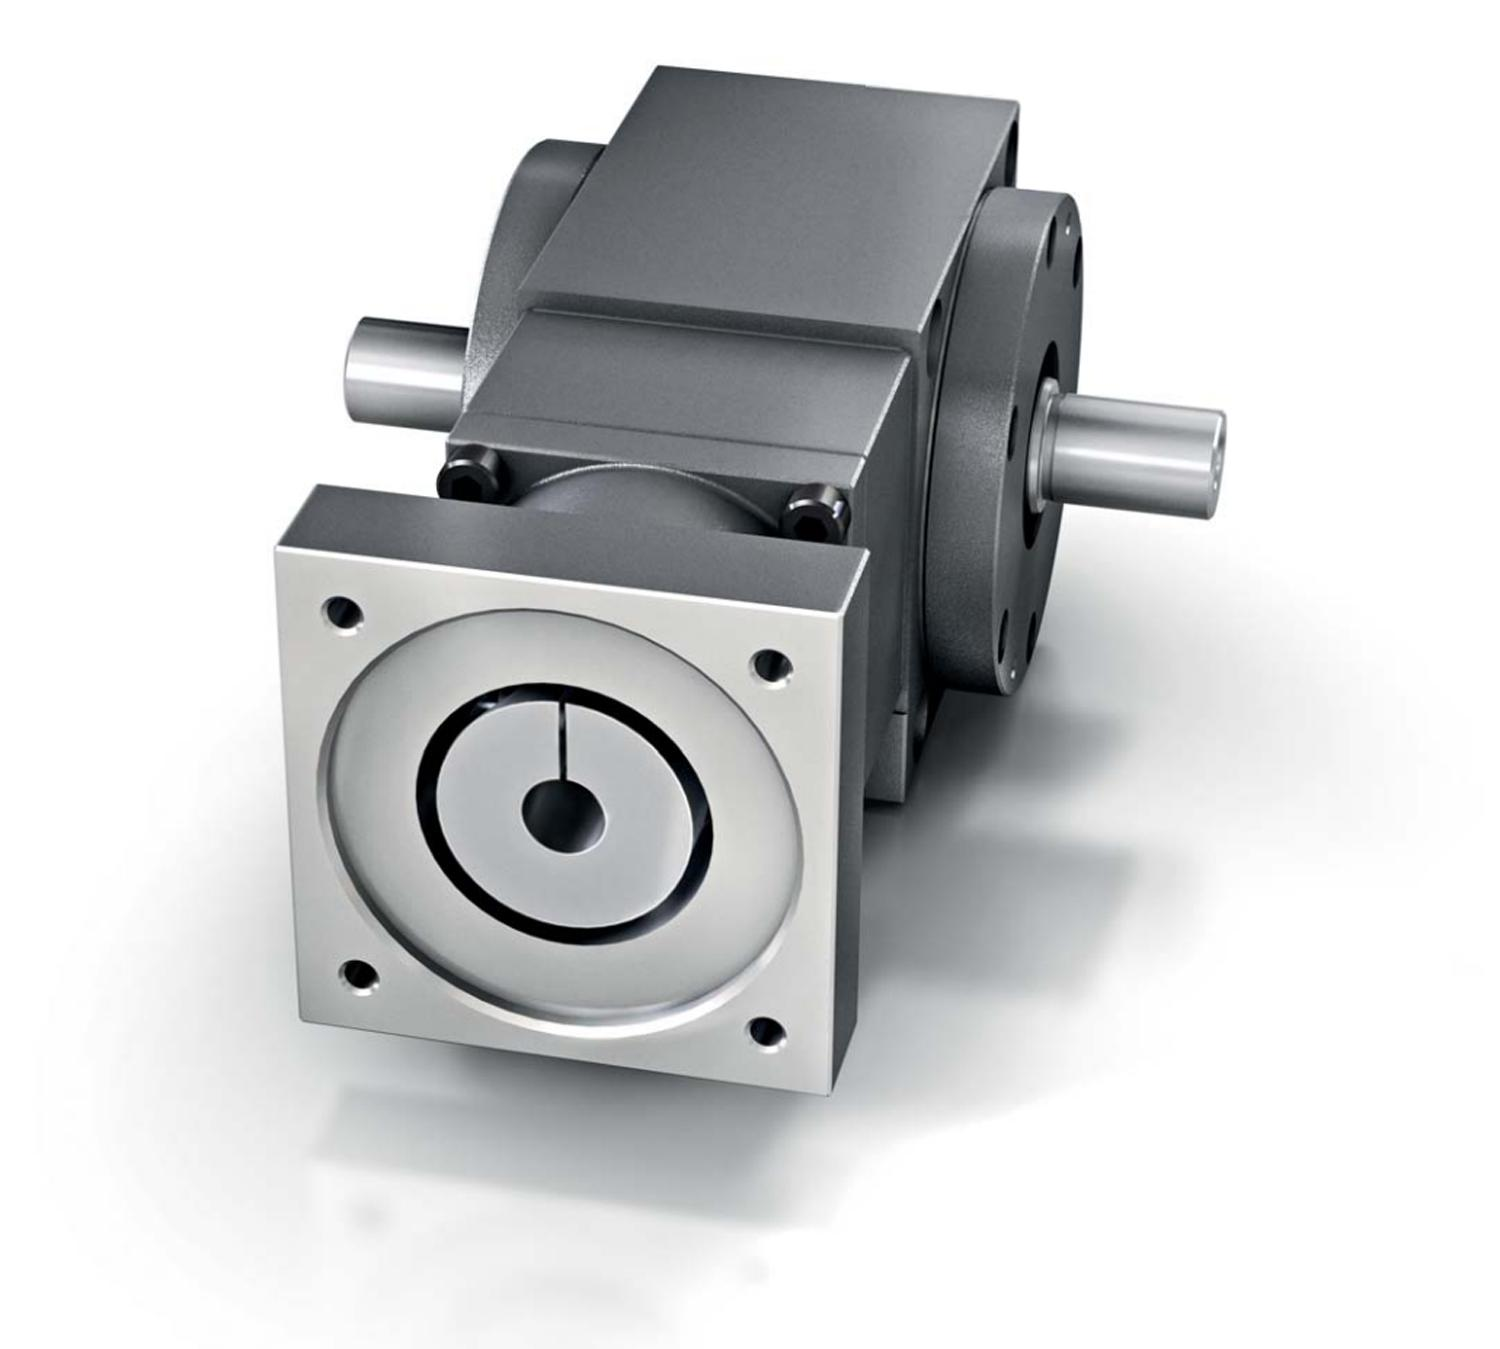 The DynaGear gearbox has been designed for highly dynamic servo applications that require rapid yet precise acceleration and deceleration